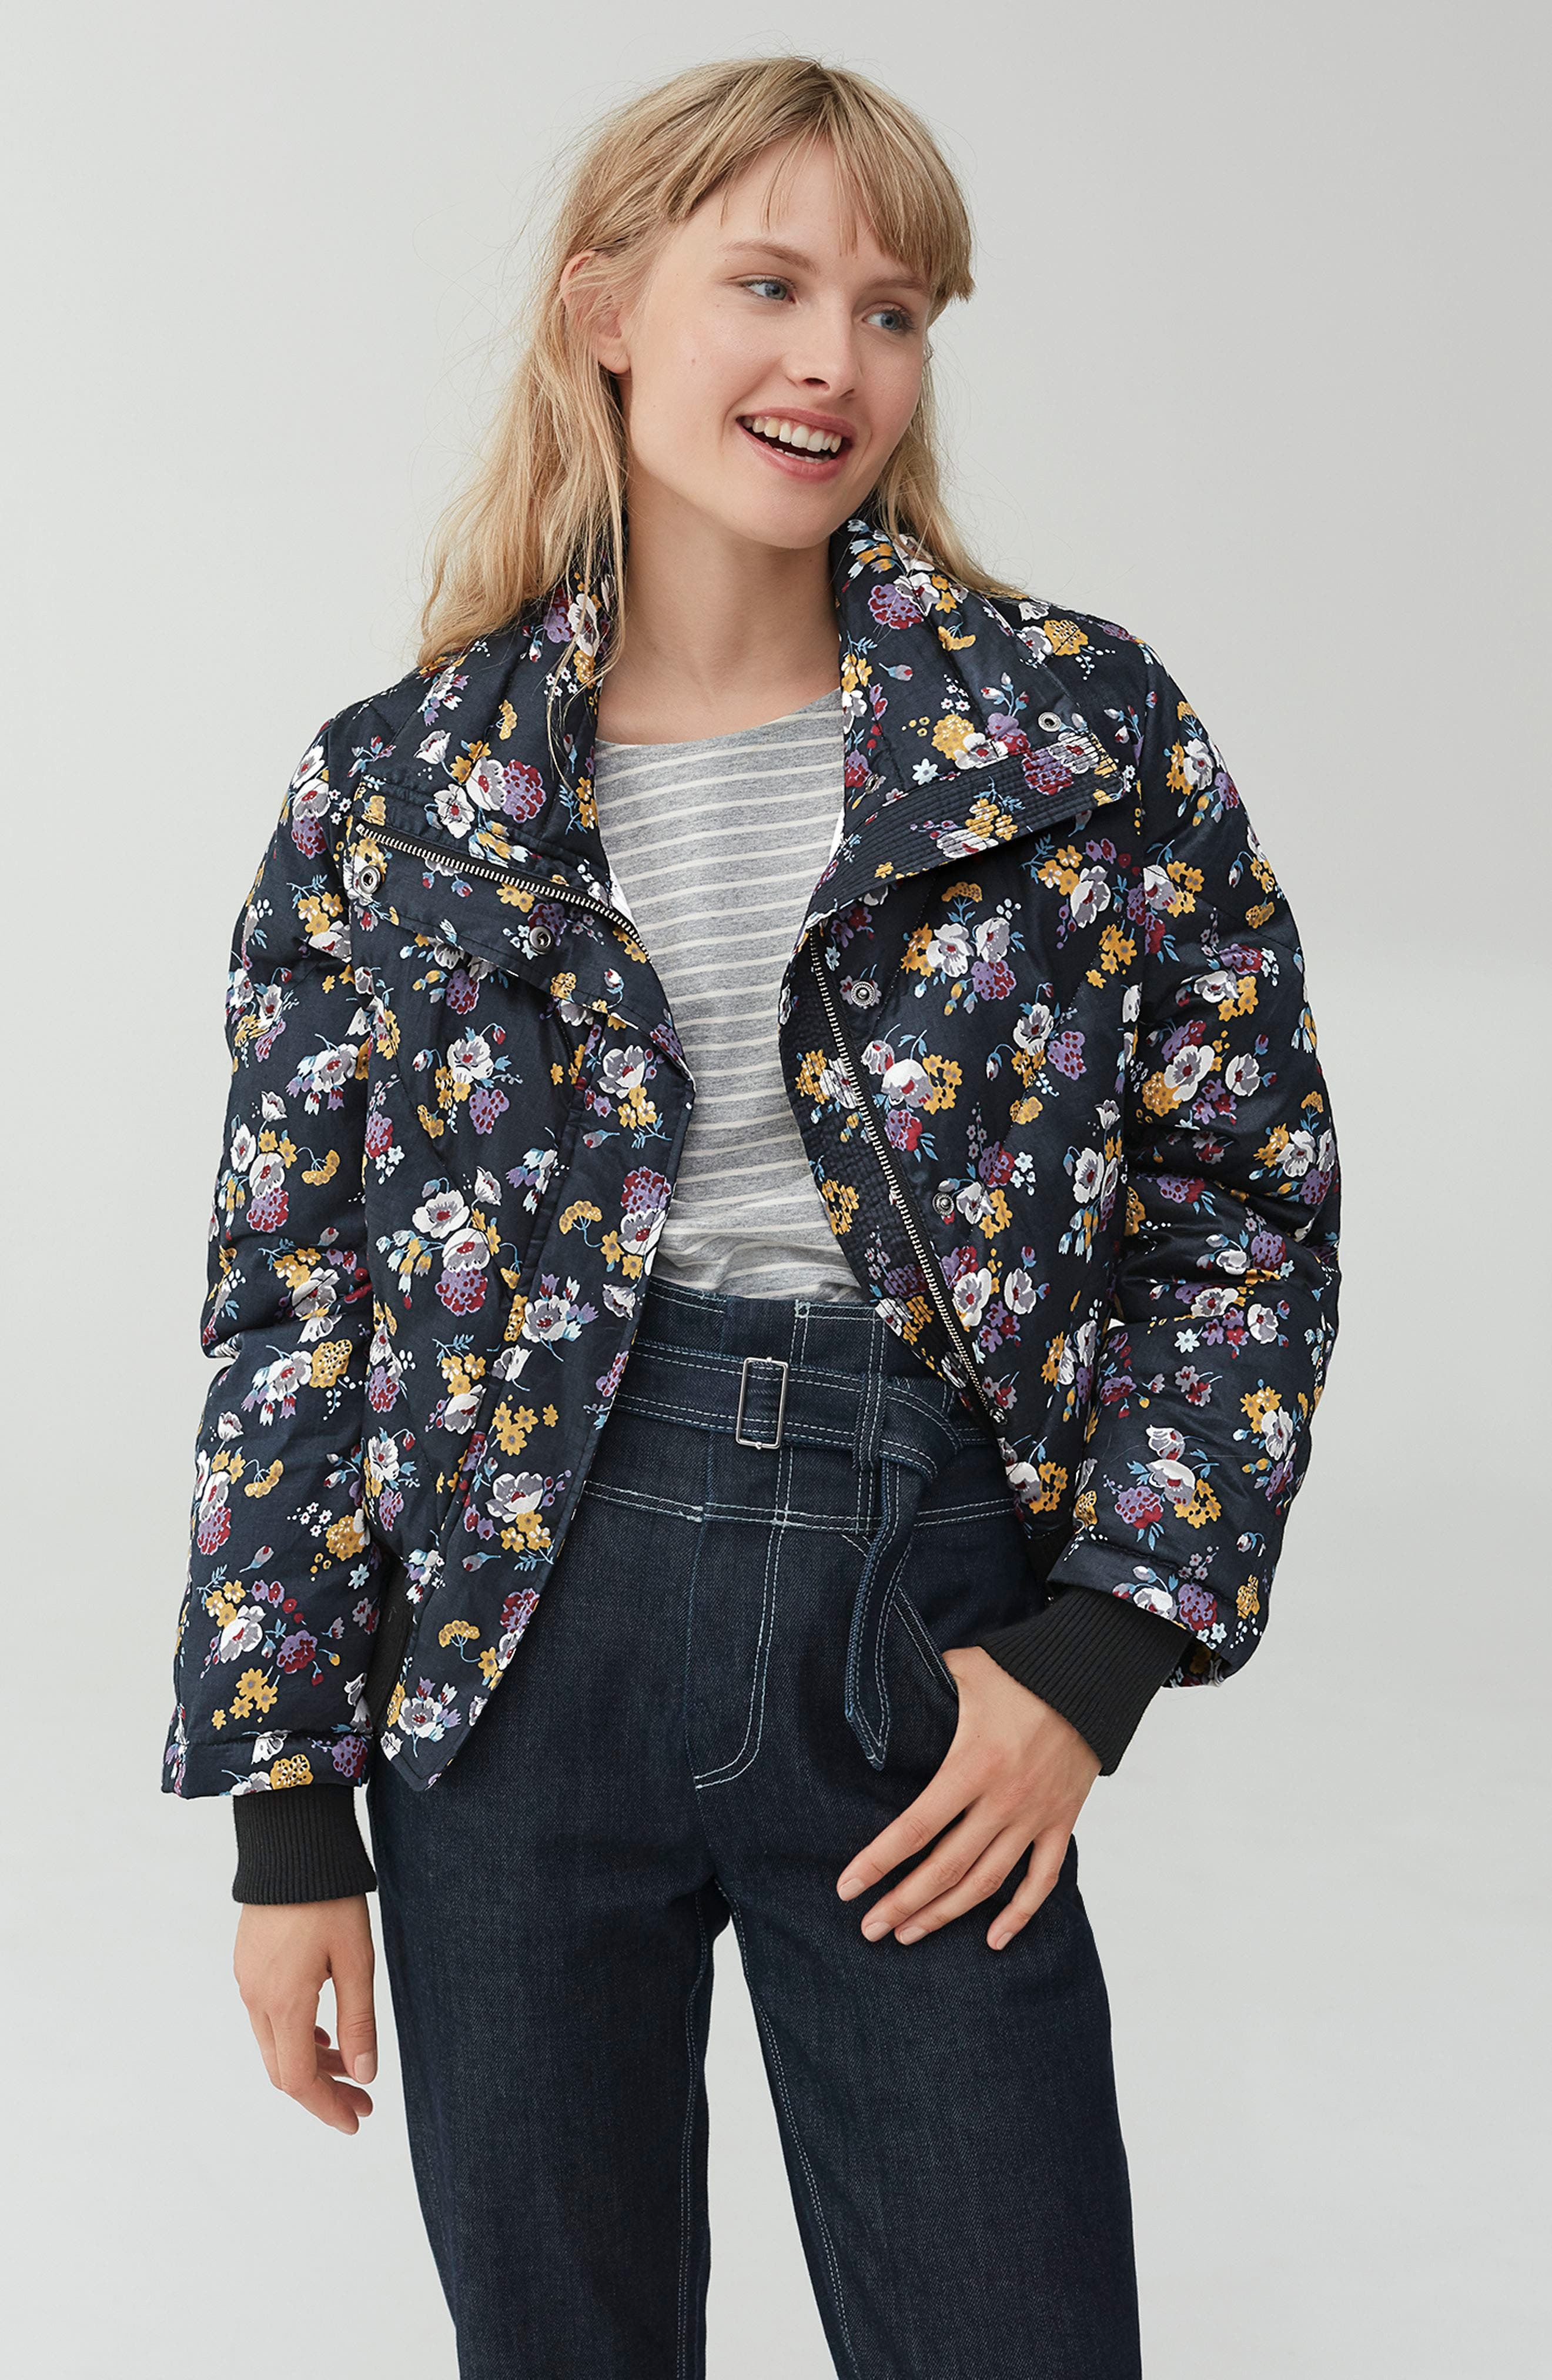 Winter Posey Jacket,                             Alternate thumbnail 7, color,                             014